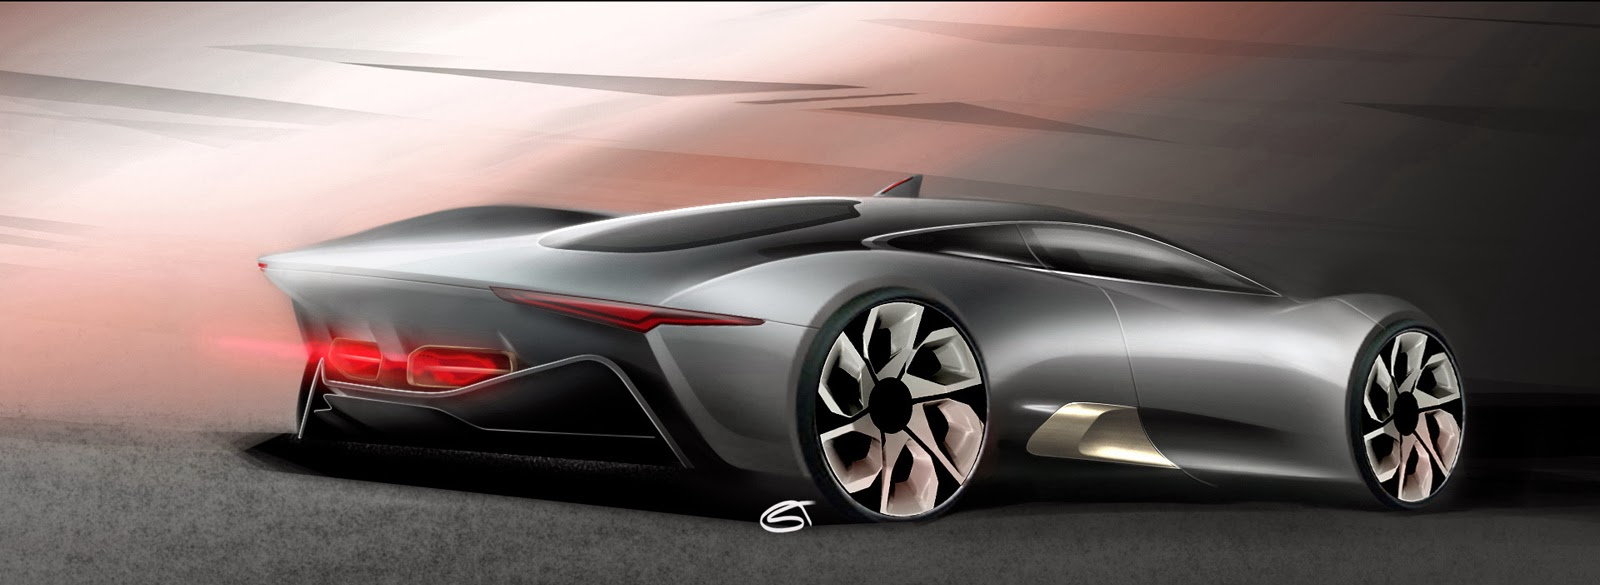 Jaguar Car Wallpapers Free Download Blog About News Entertainment Funny Videos Pictures And Hd